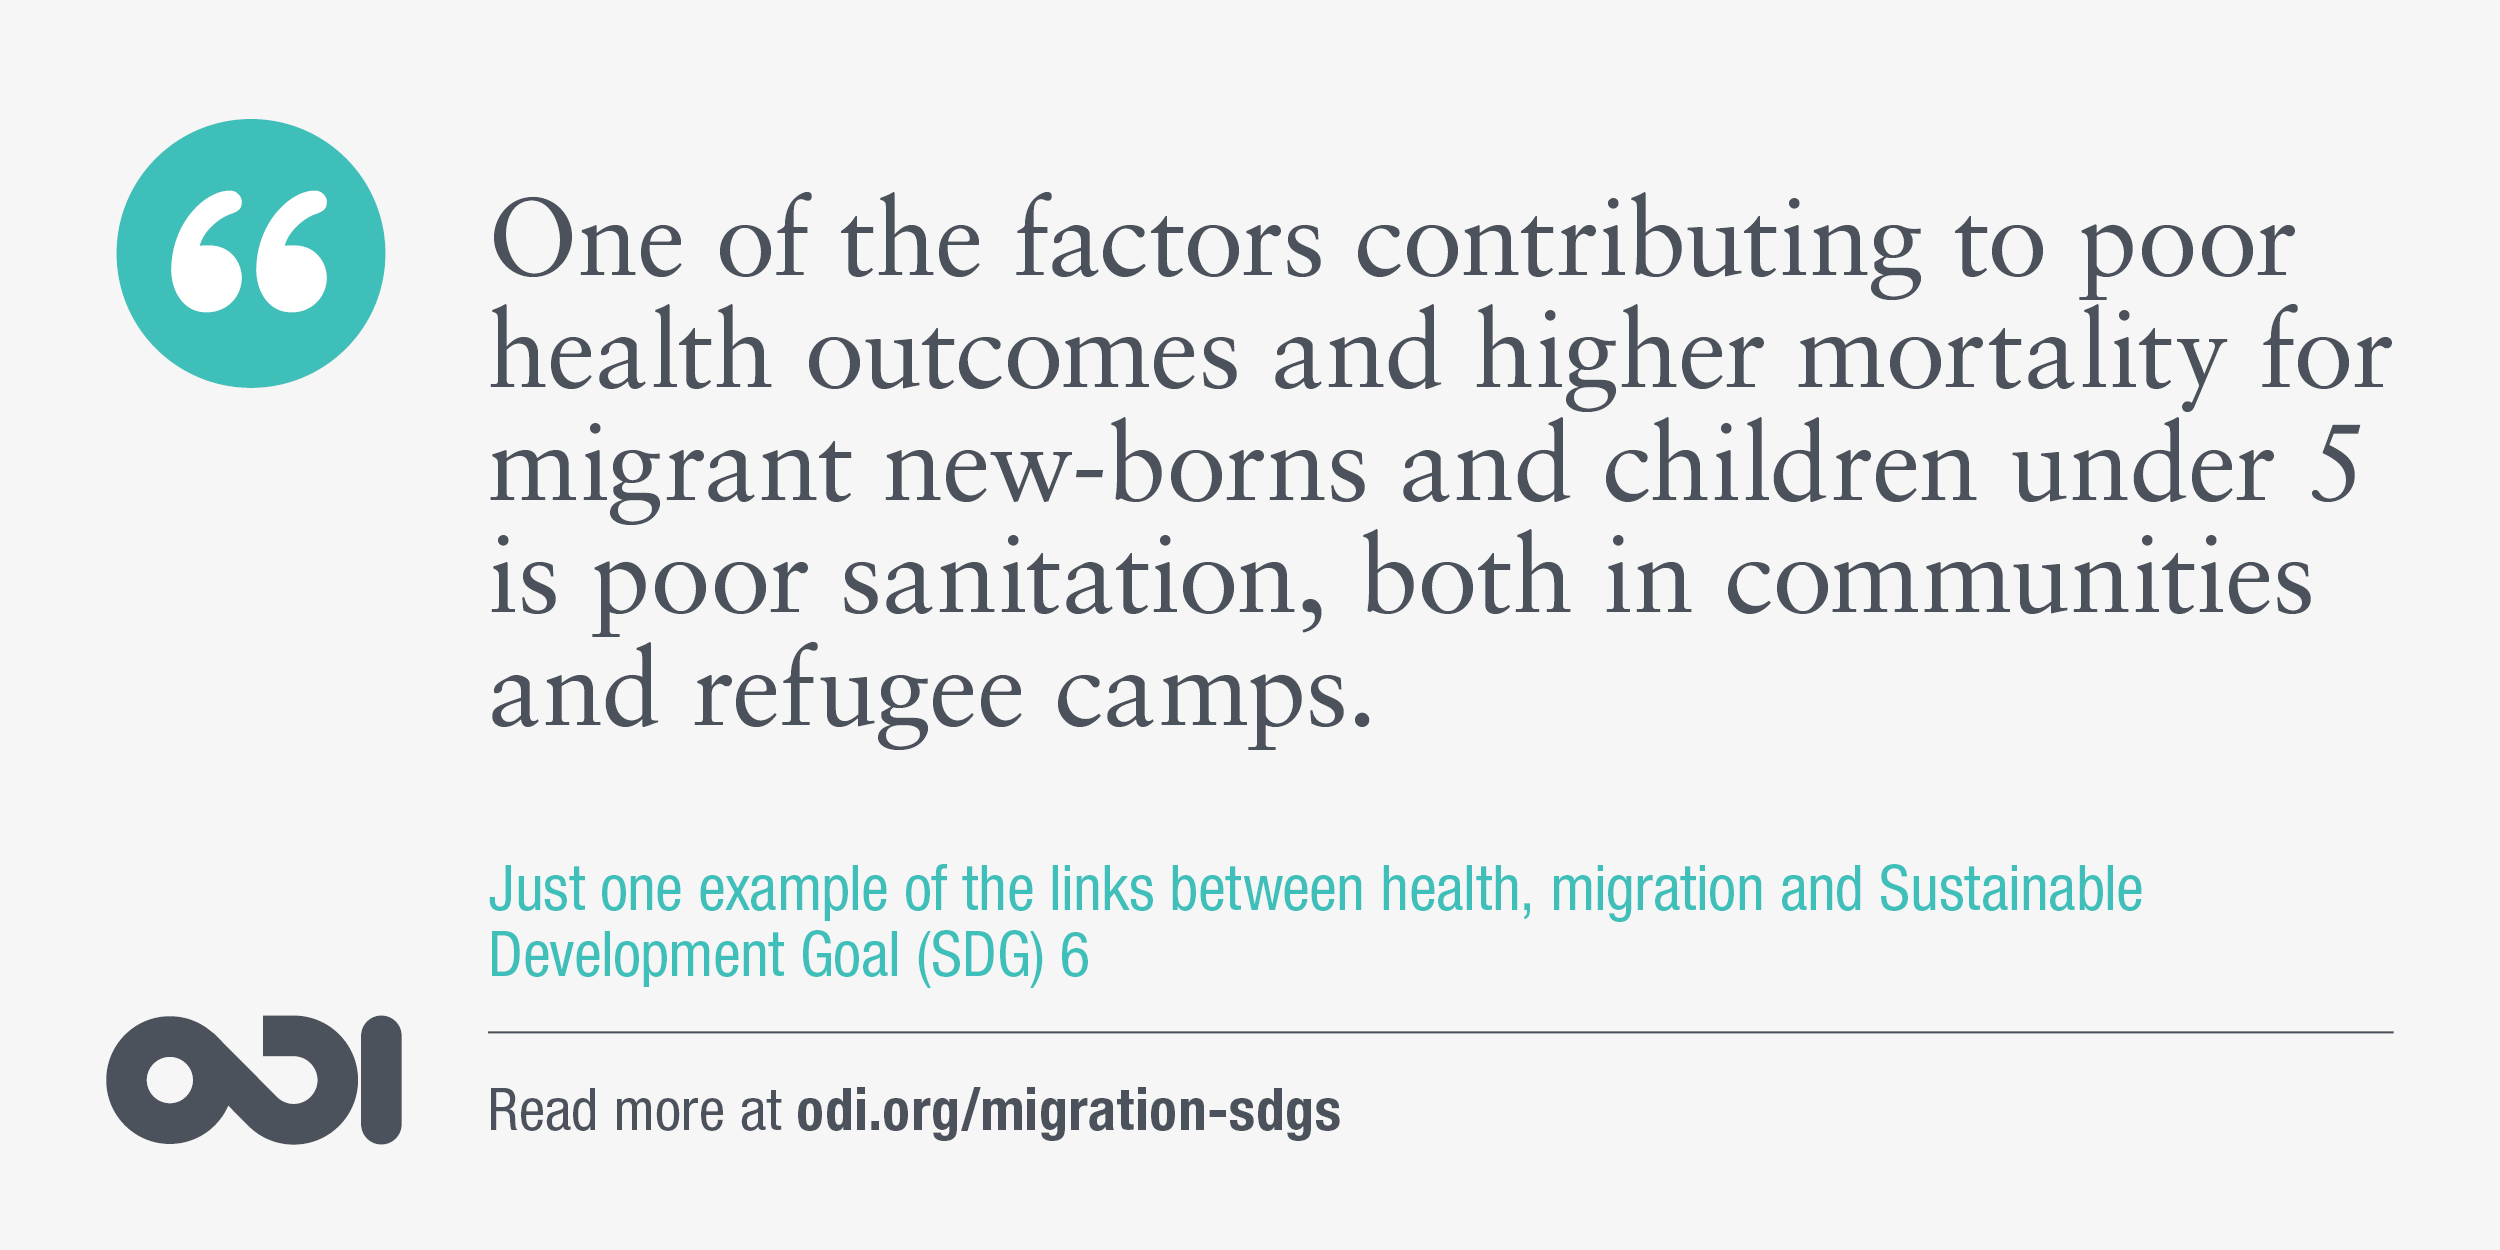 The links between health, migration and SDG 6.